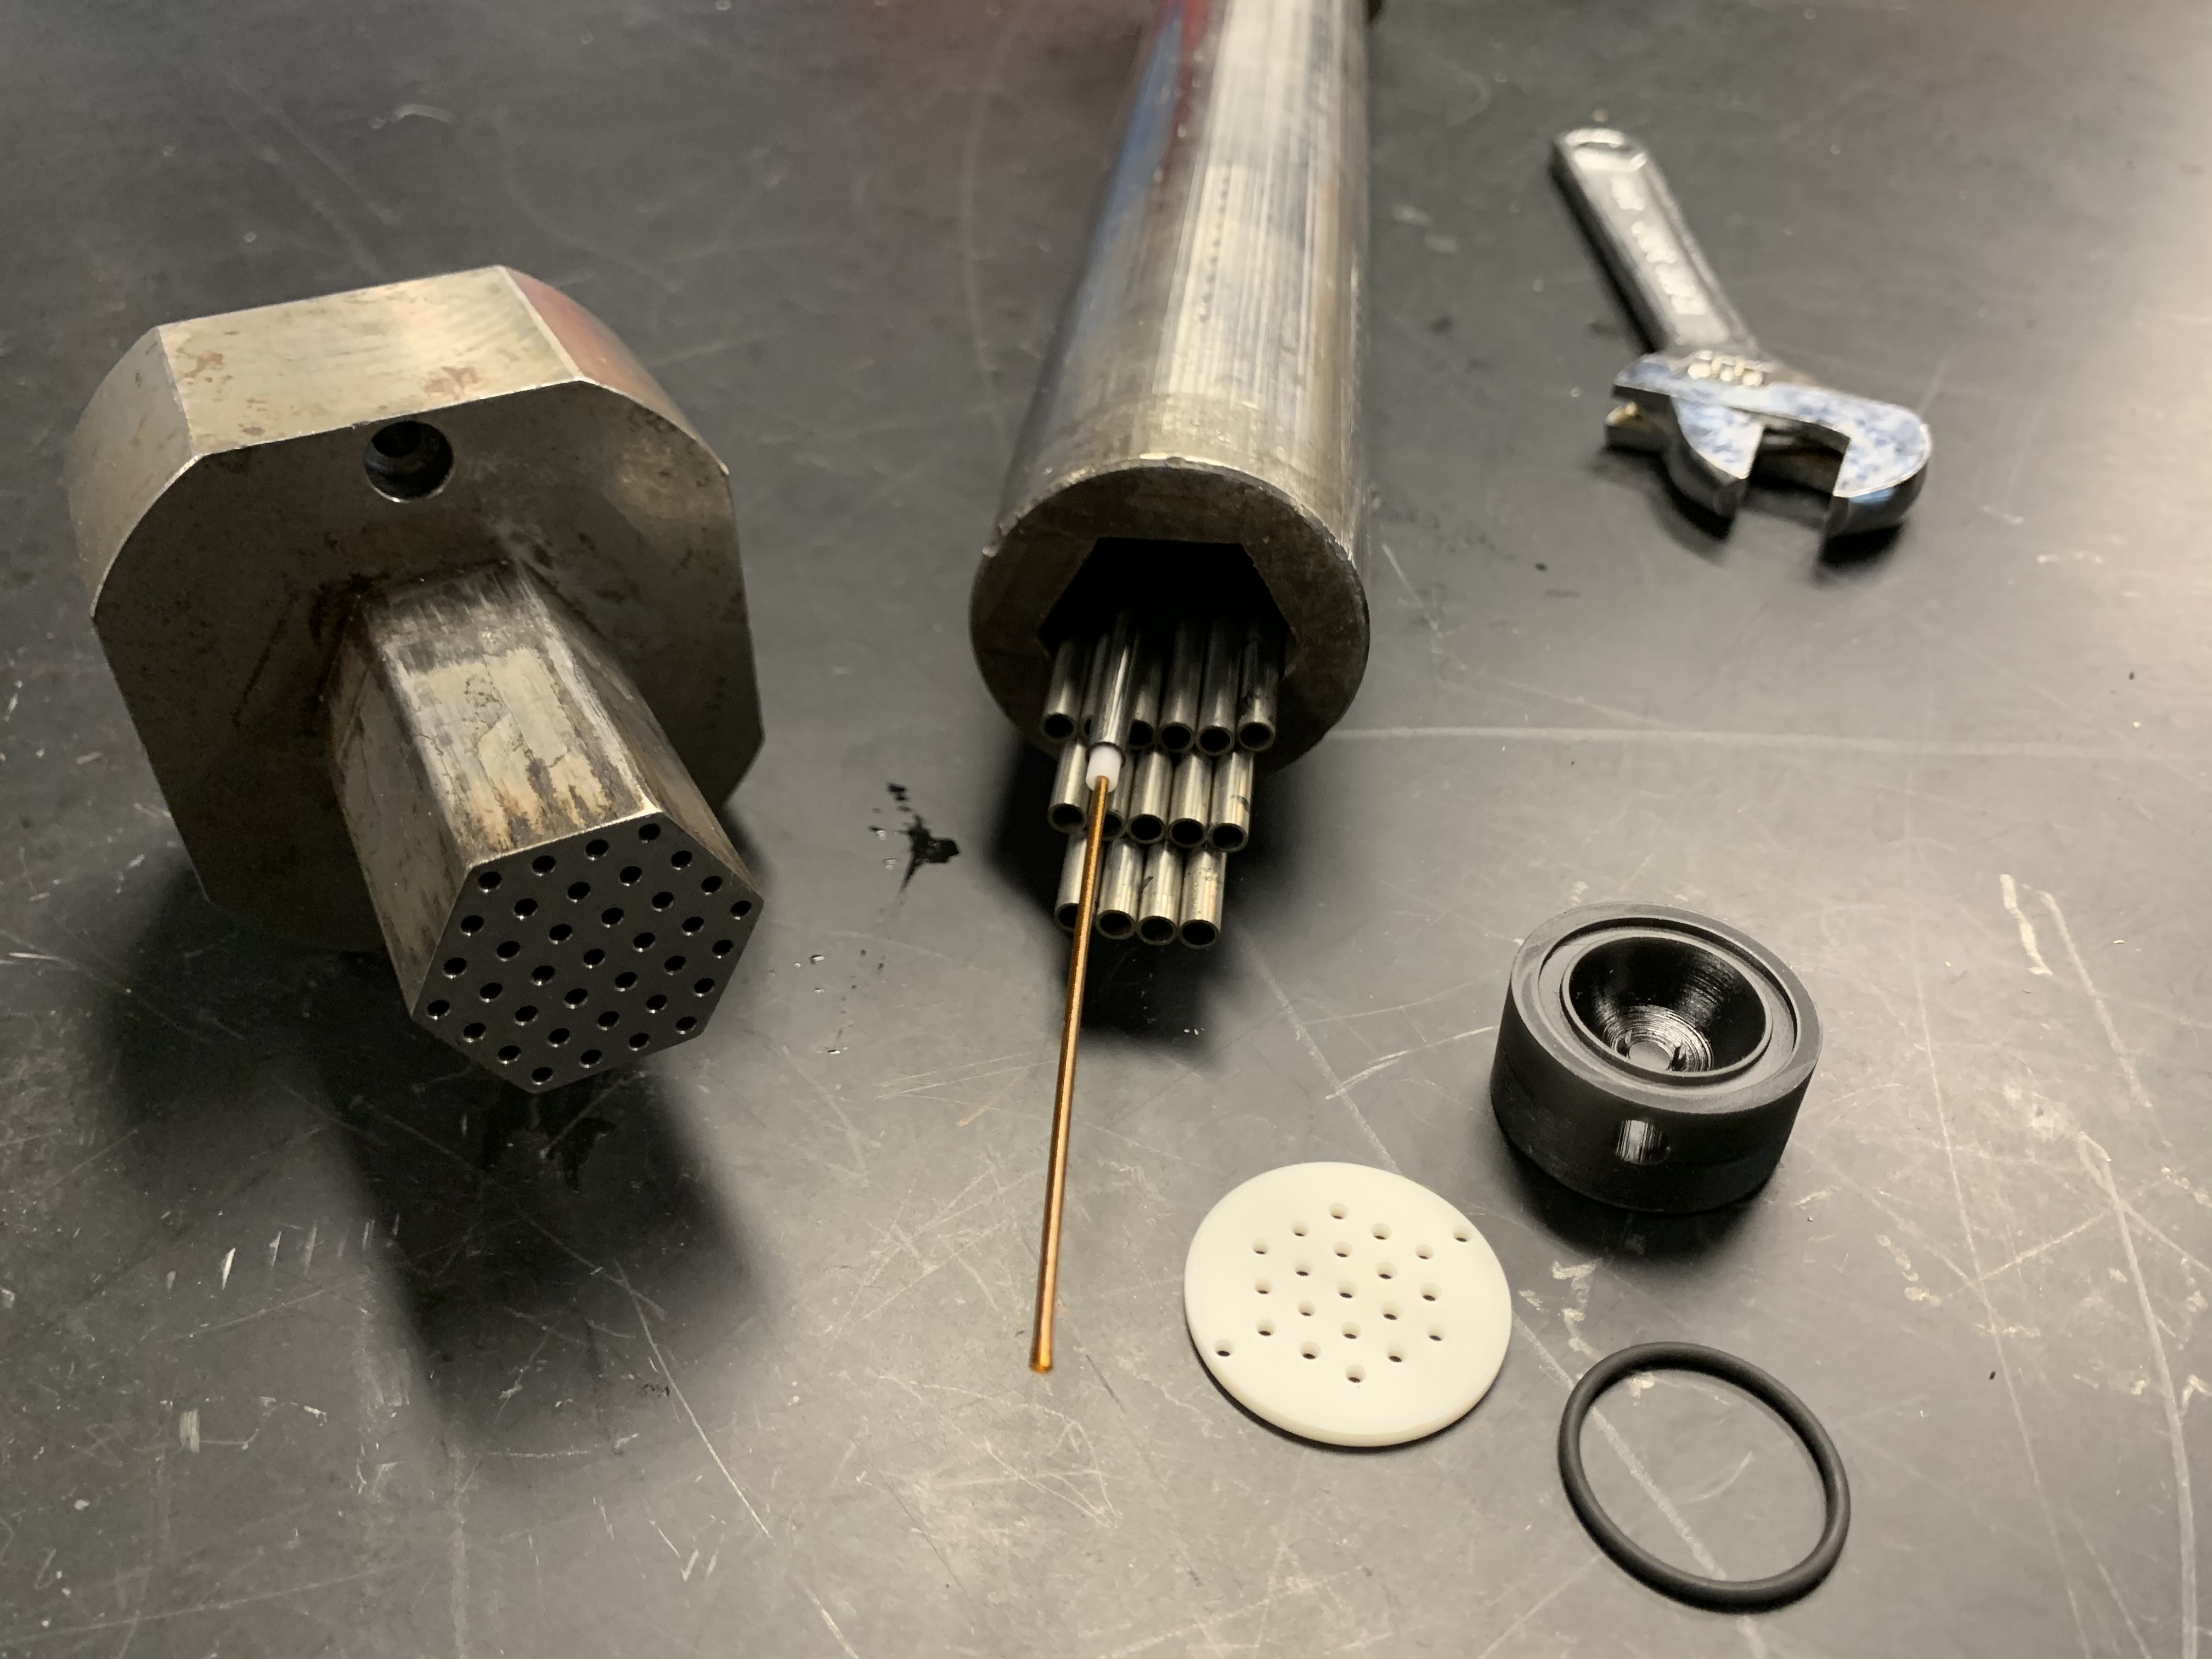 Tubes and other components of a caloric materials prototype developed at the University of Maryland.